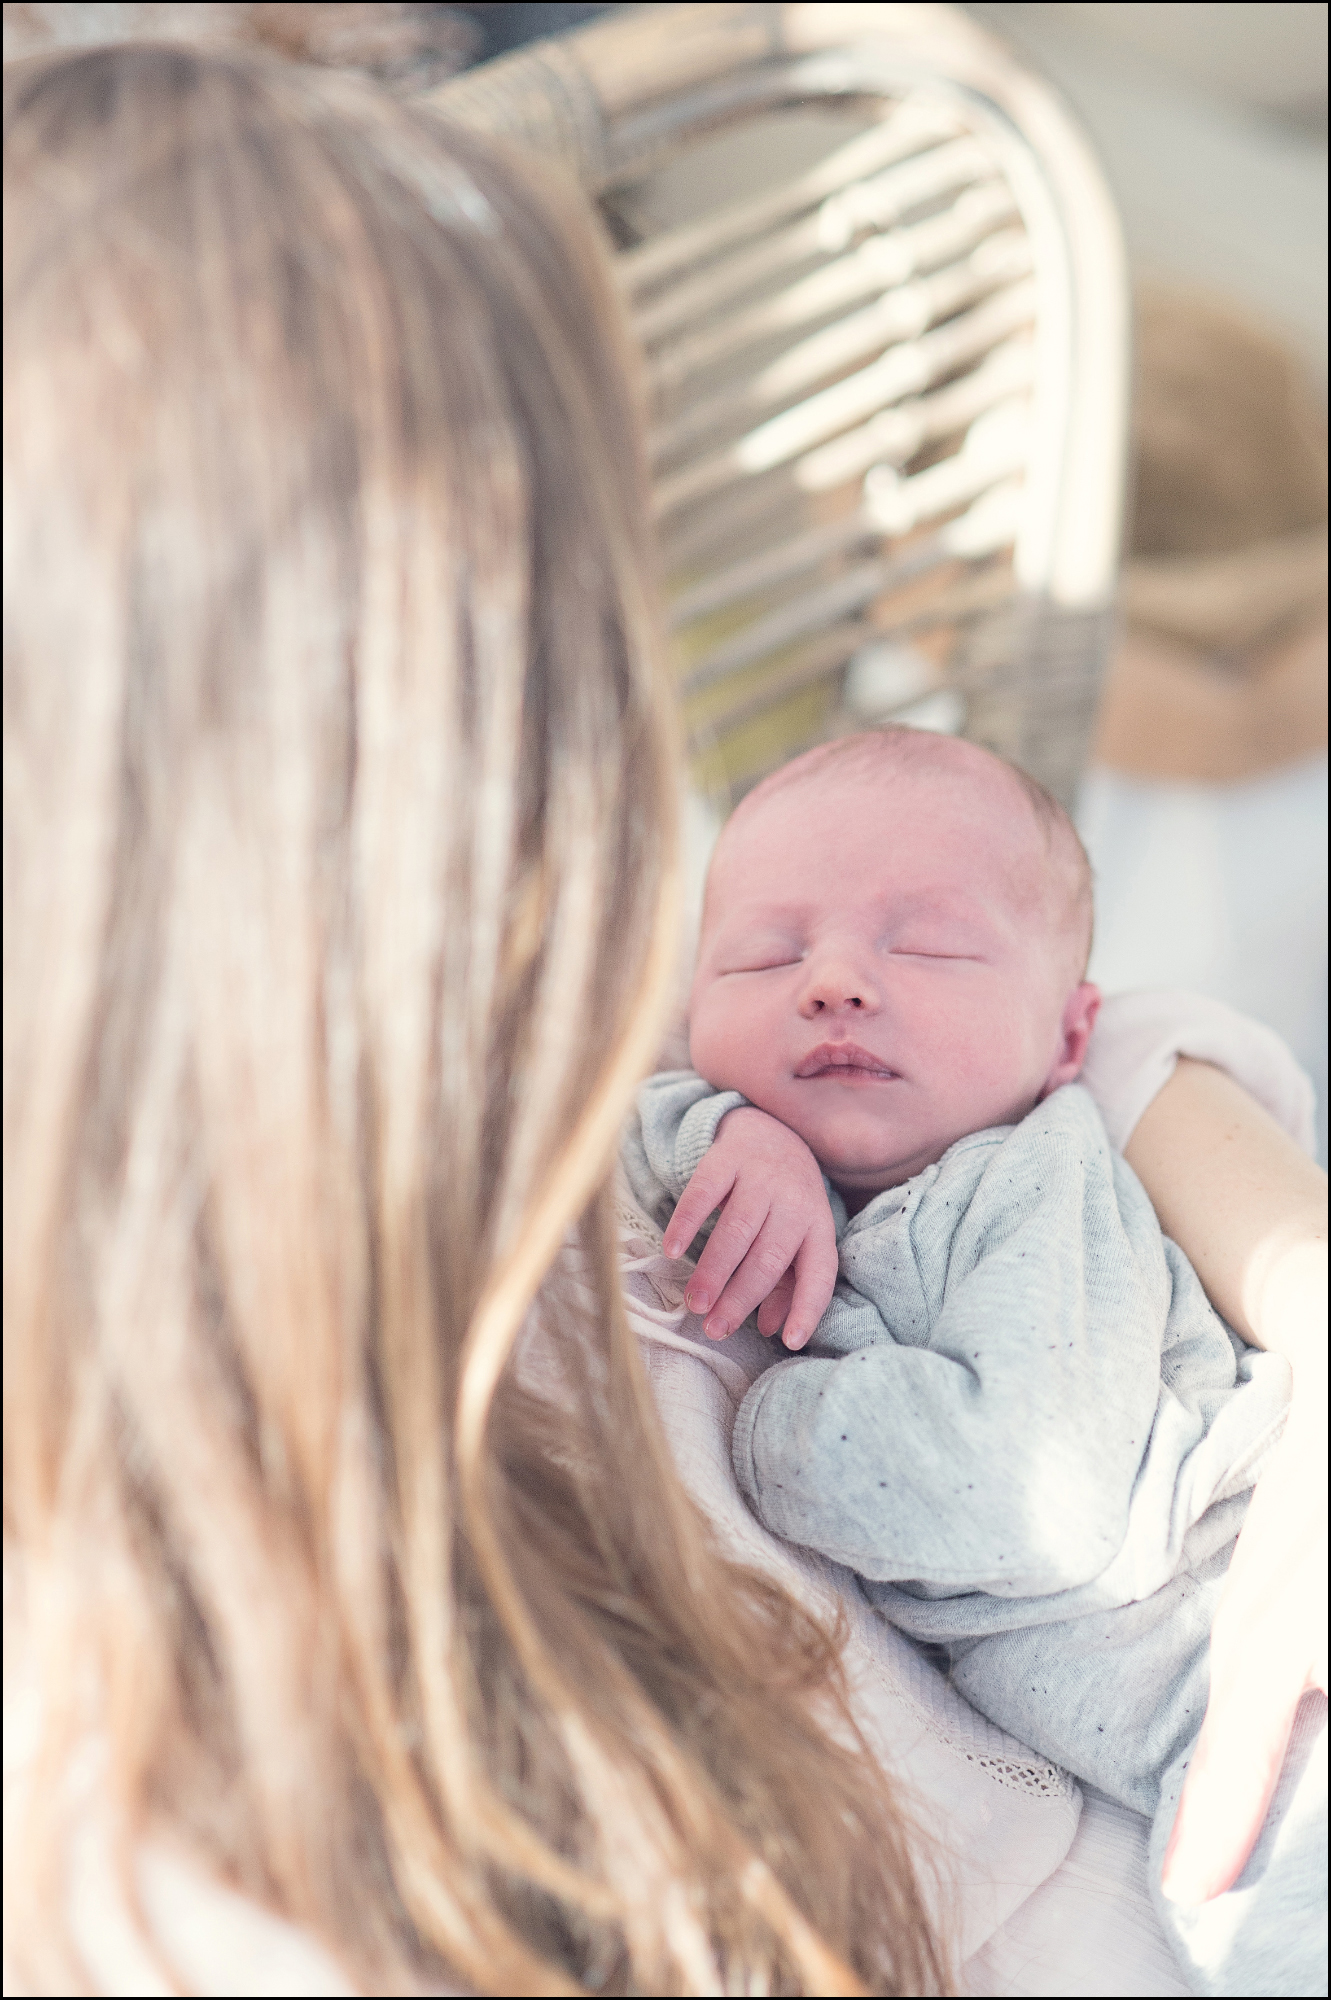 Naturelle Look Photography - Lifestyle_Newbornshoot a005 Pastel_line.jpg